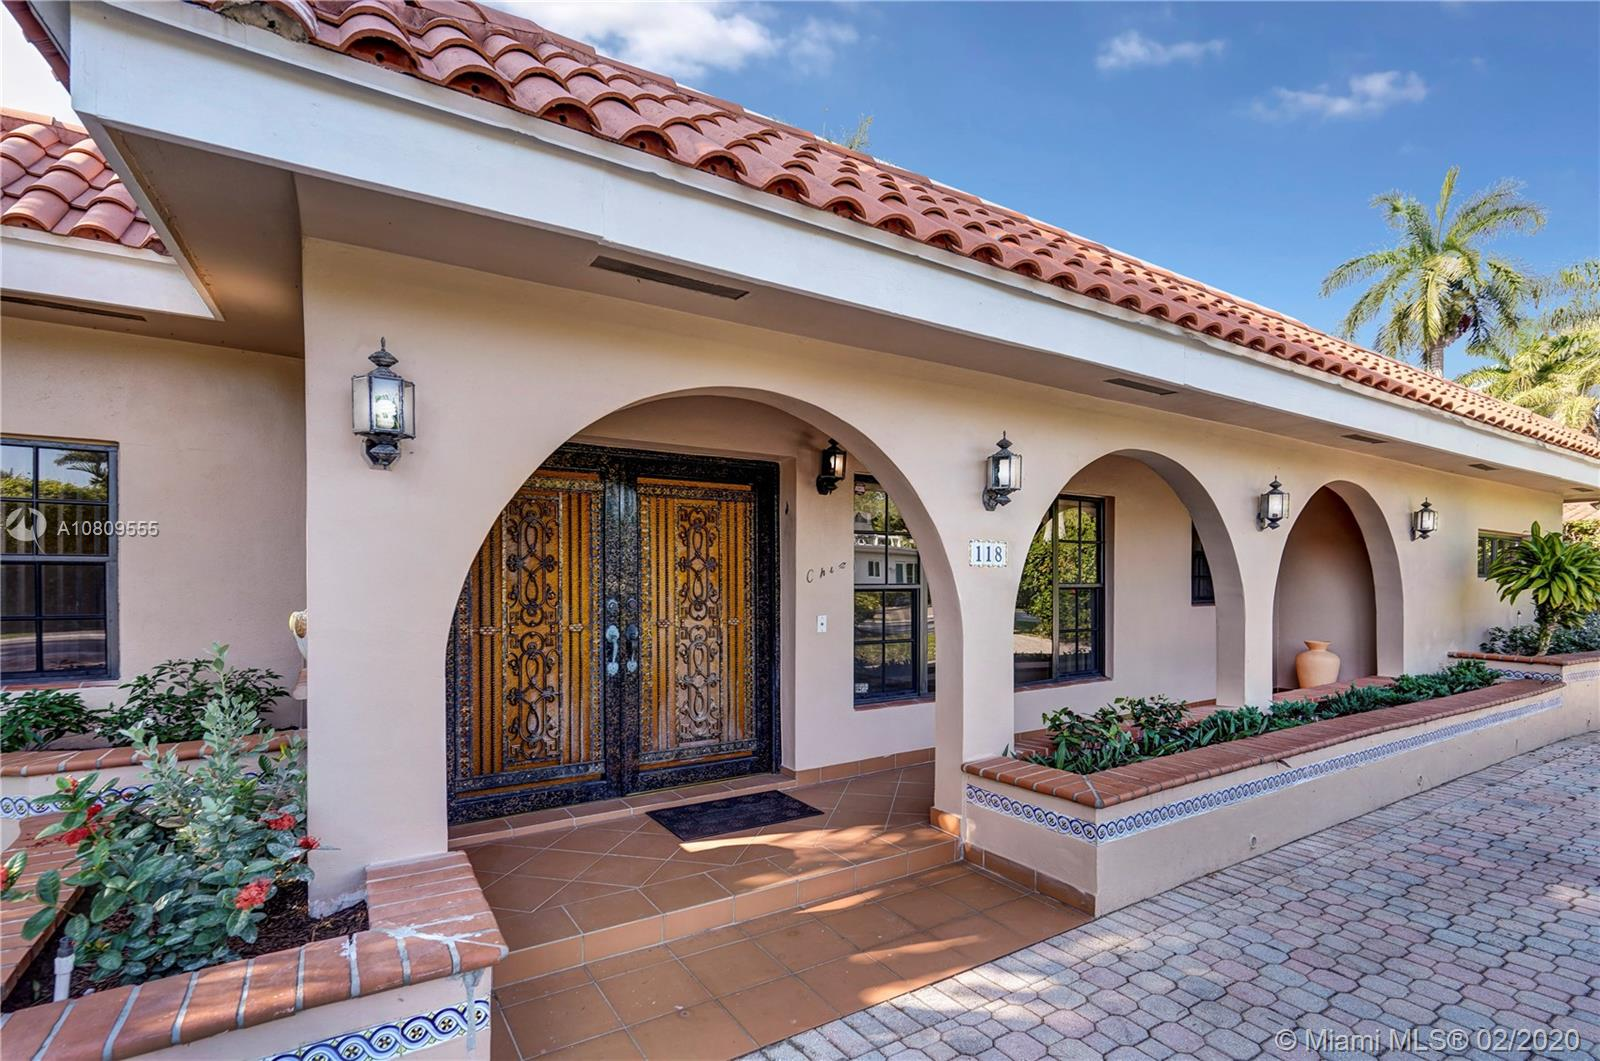 Undisclosed For Sale A10809555, FL